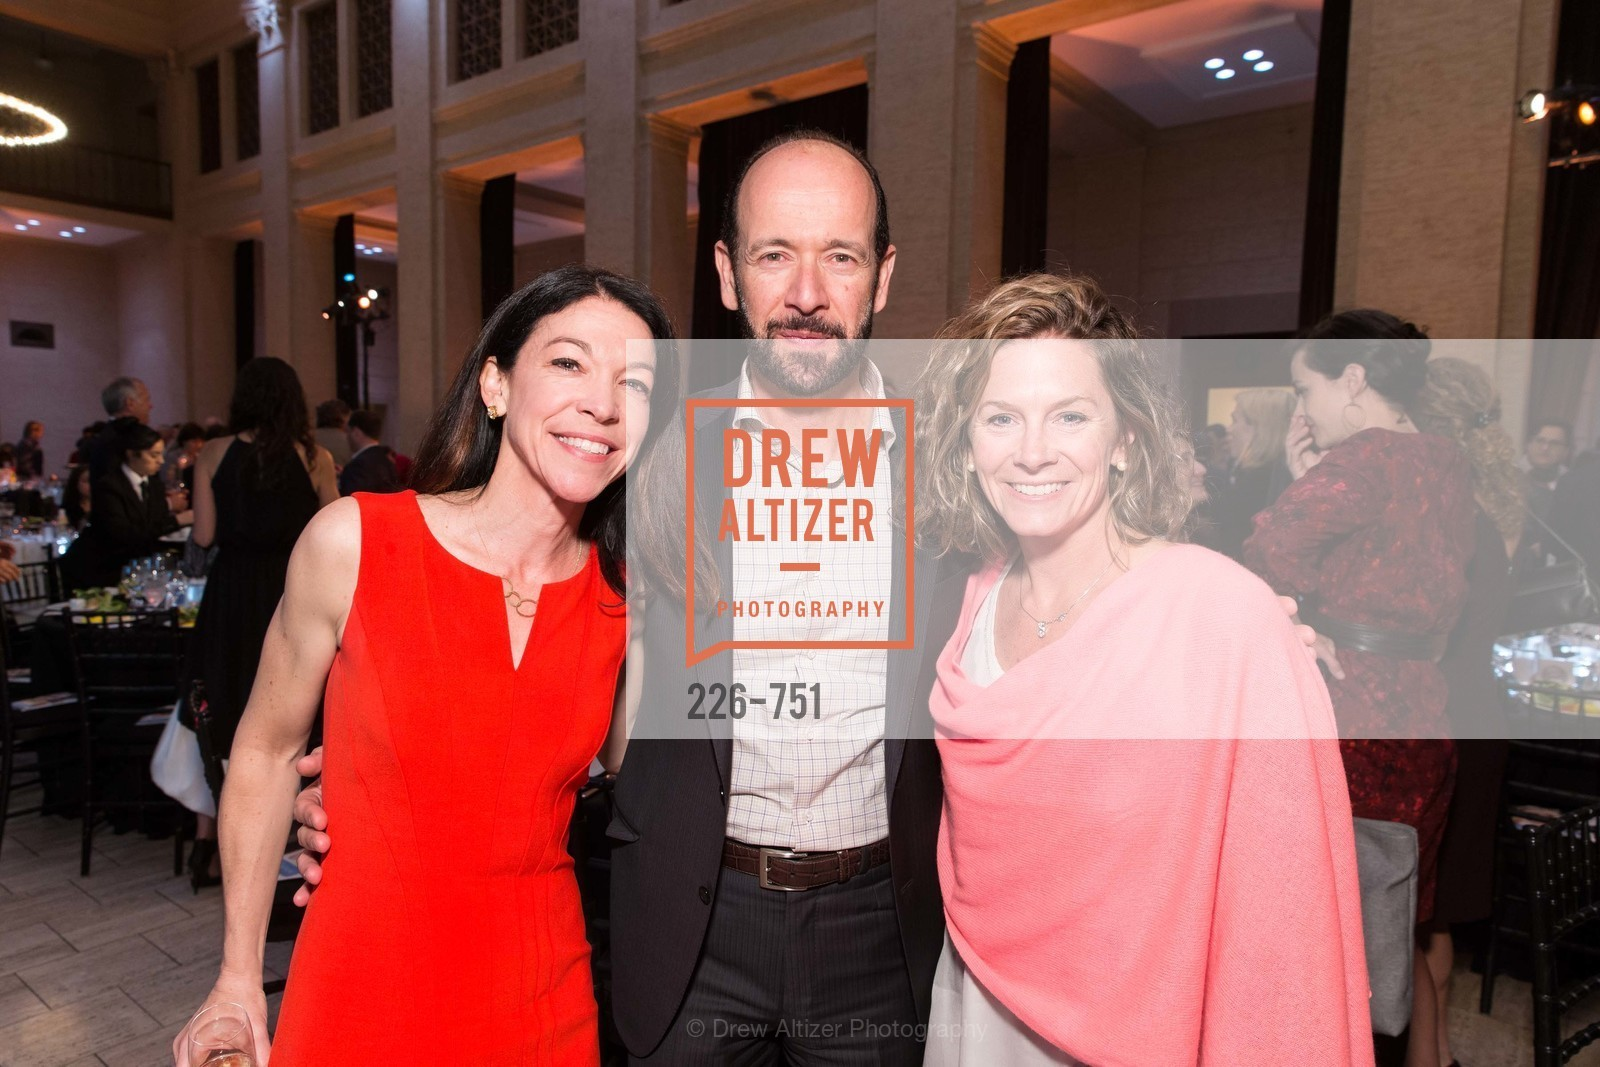 Lisa DeCarlo, Enrique Salem, Heather Walker, CENTER FOR ENVIRONMENTAL HEALTH (CEH) 2015 Gala, US, May 28th, 2015,Drew Altizer, Drew Altizer Photography, full-service agency, private events, San Francisco photographer, photographer california